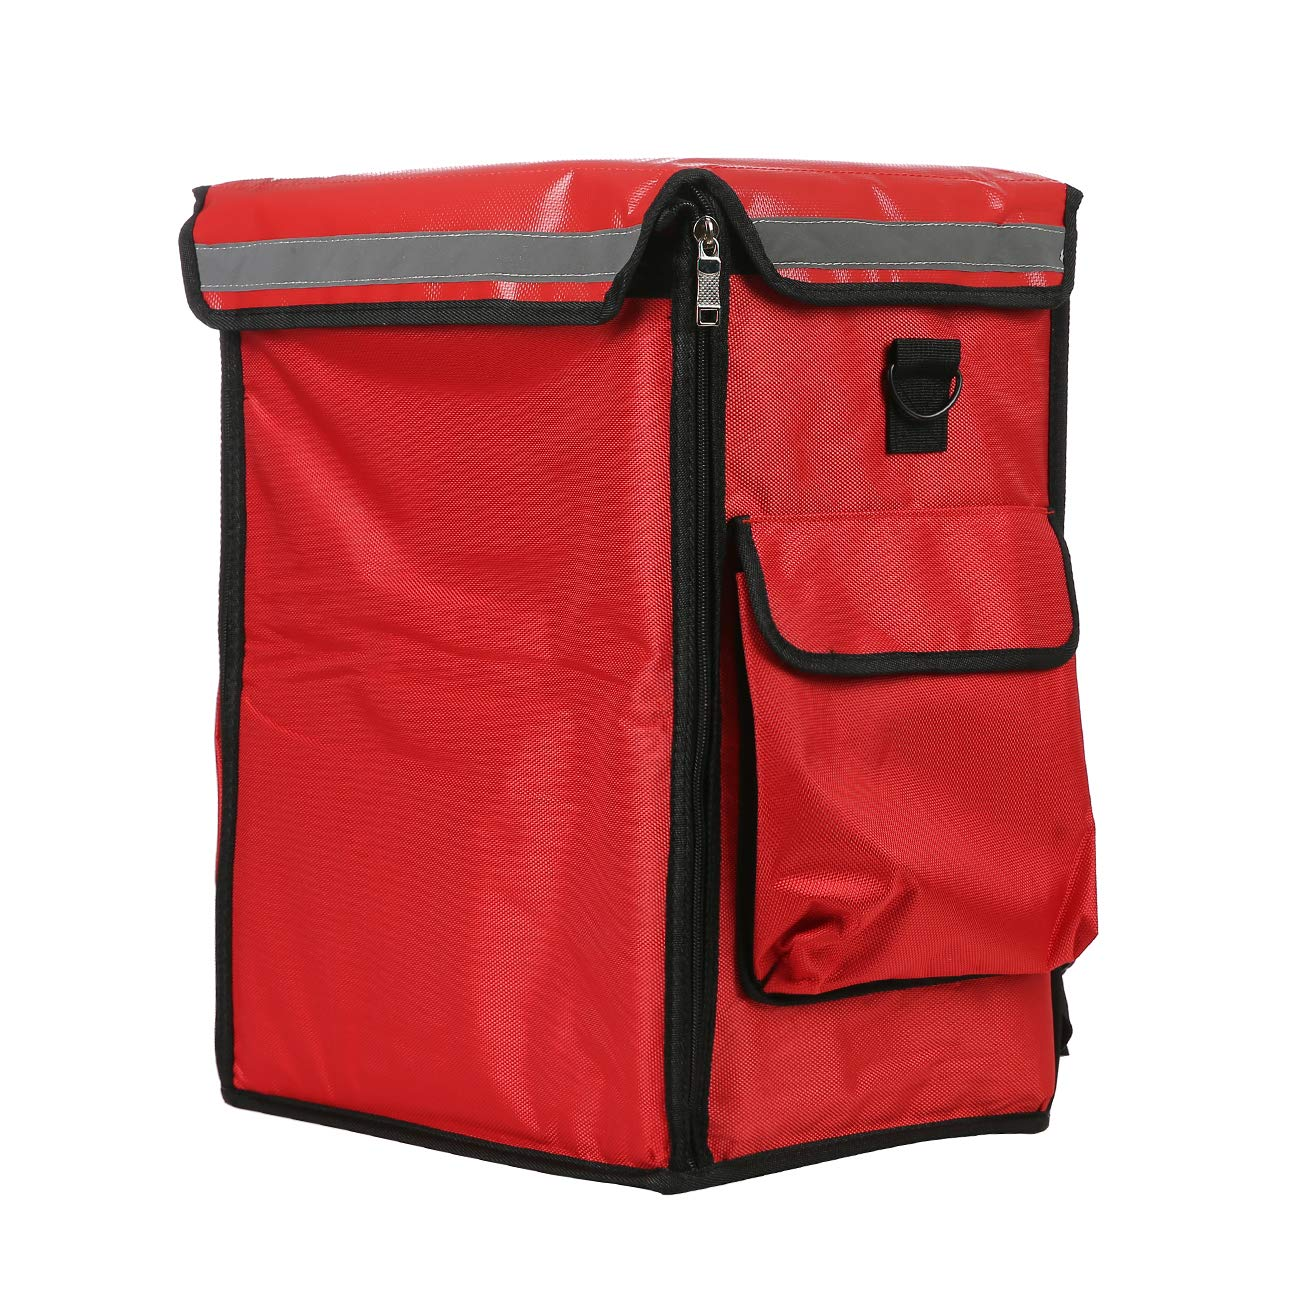 Food Delivery Backpack,Waterproof Insulated Bag, Layered Food Delivery Bag with Separation Plate, 14''×10.5''×20'' (Red)